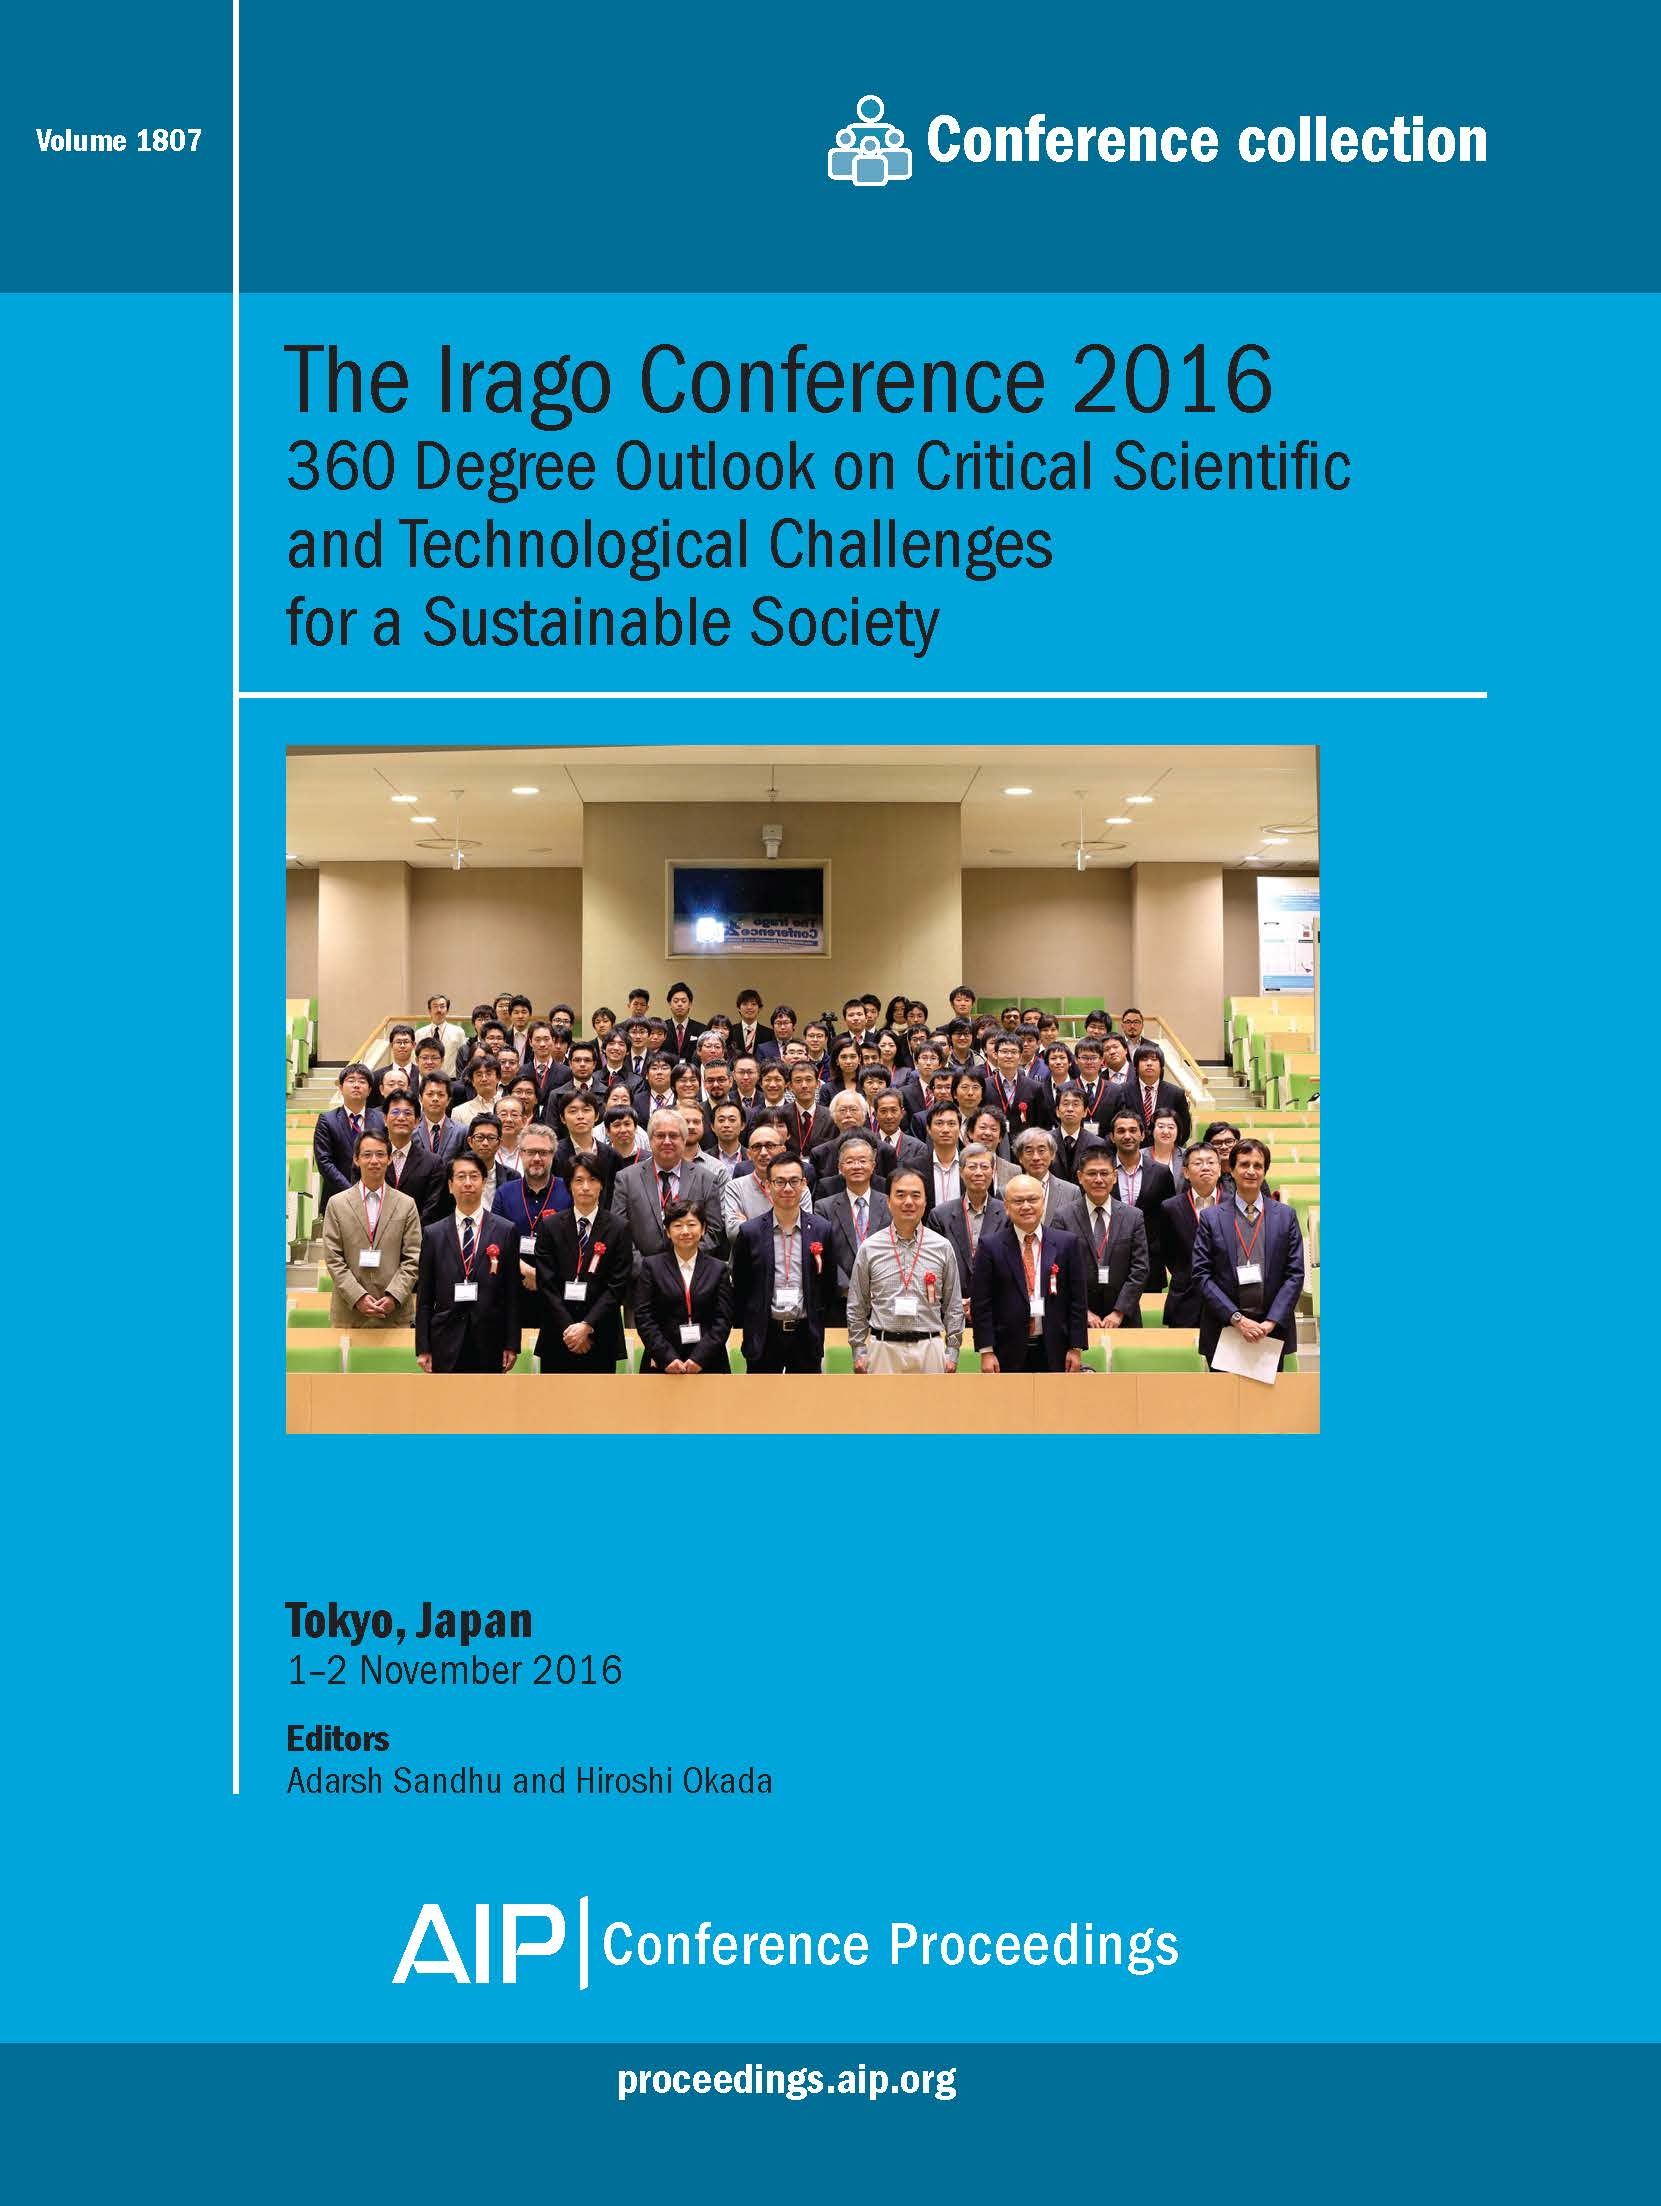 Volume 1807: The Irago Conference 2016 | AIP Publishing